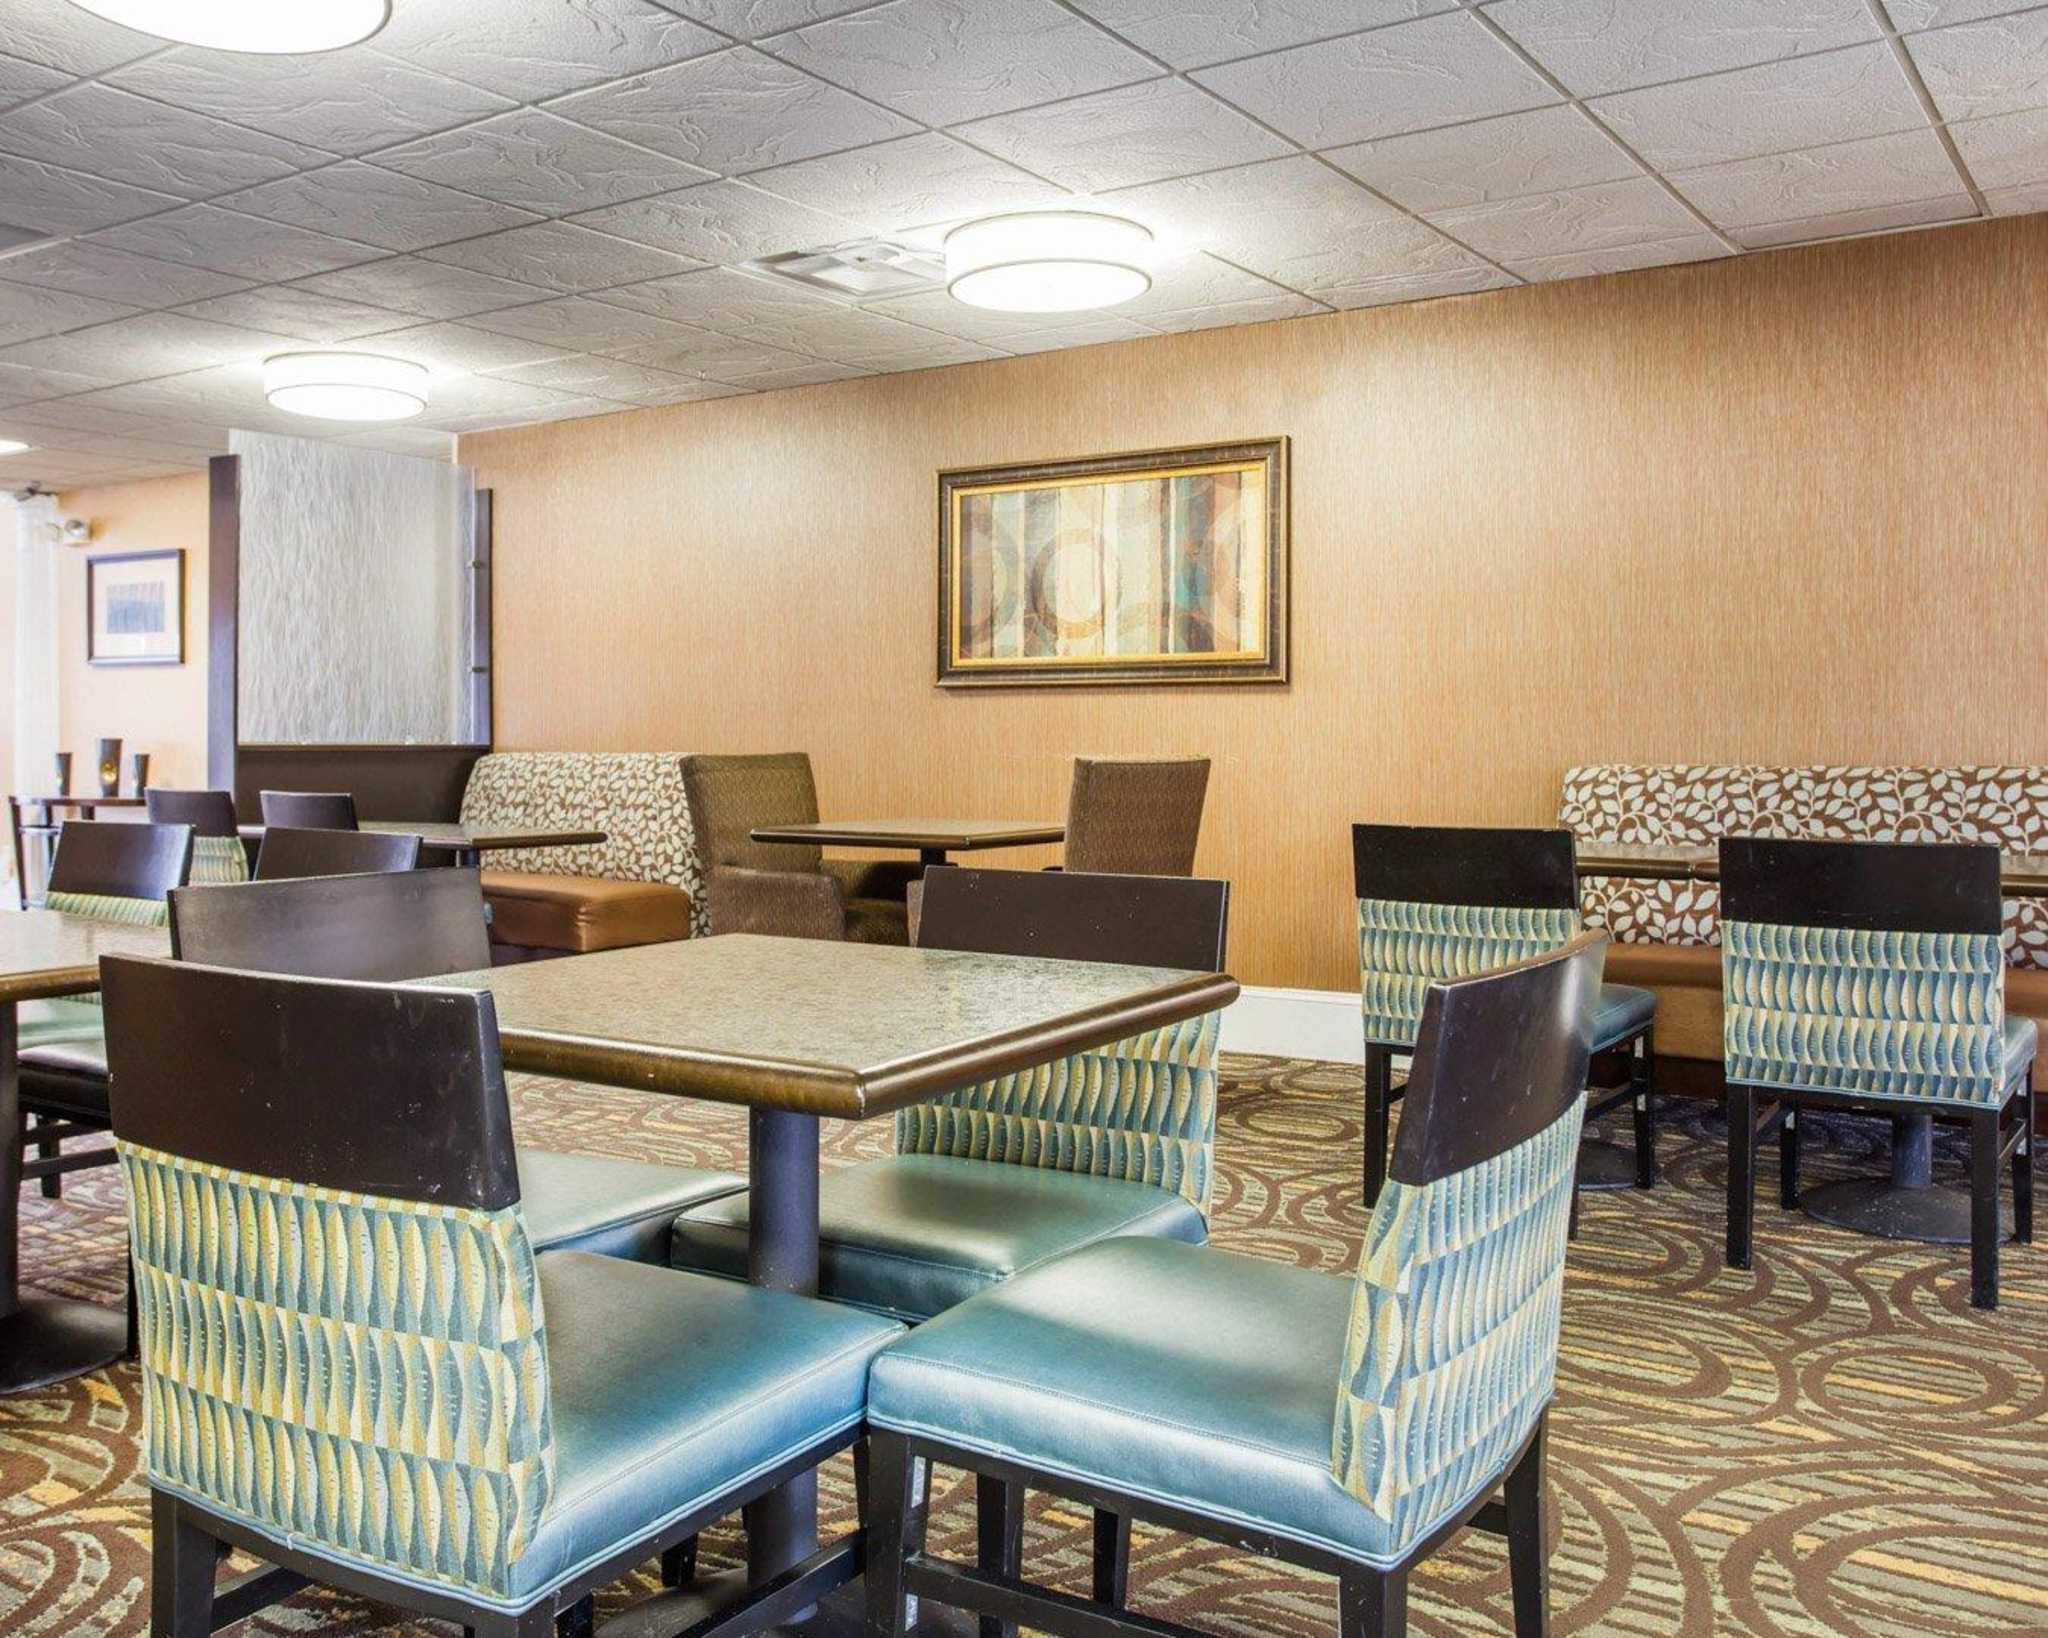 Comfort Inn & Suites at Stone Mountain image 22